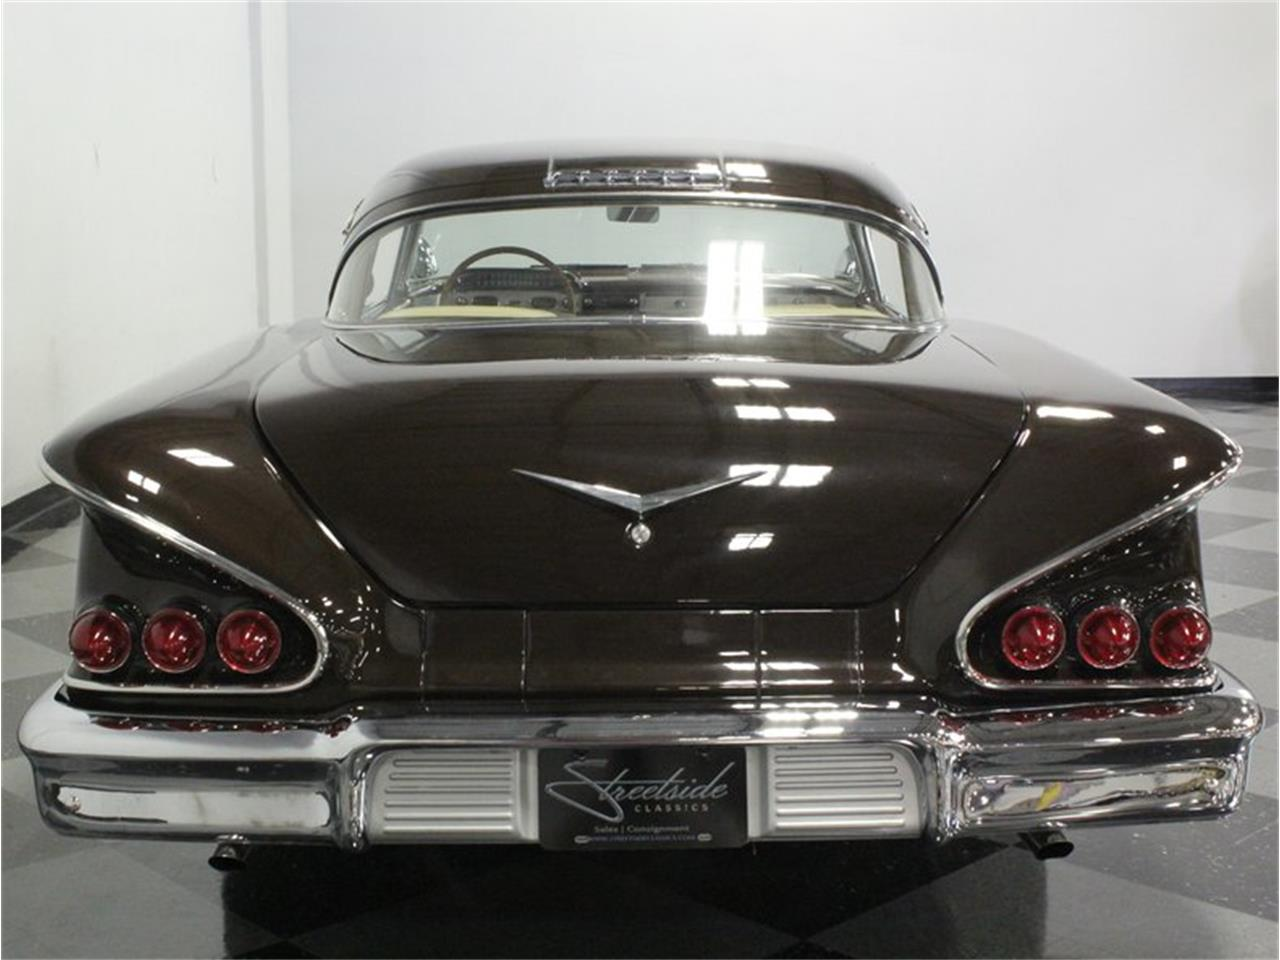 Large Picture of 1958 Impala located in Ft Worth Texas - $44,995.00 Offered by Streetside Classics - Dallas / Fort Worth - HX8B